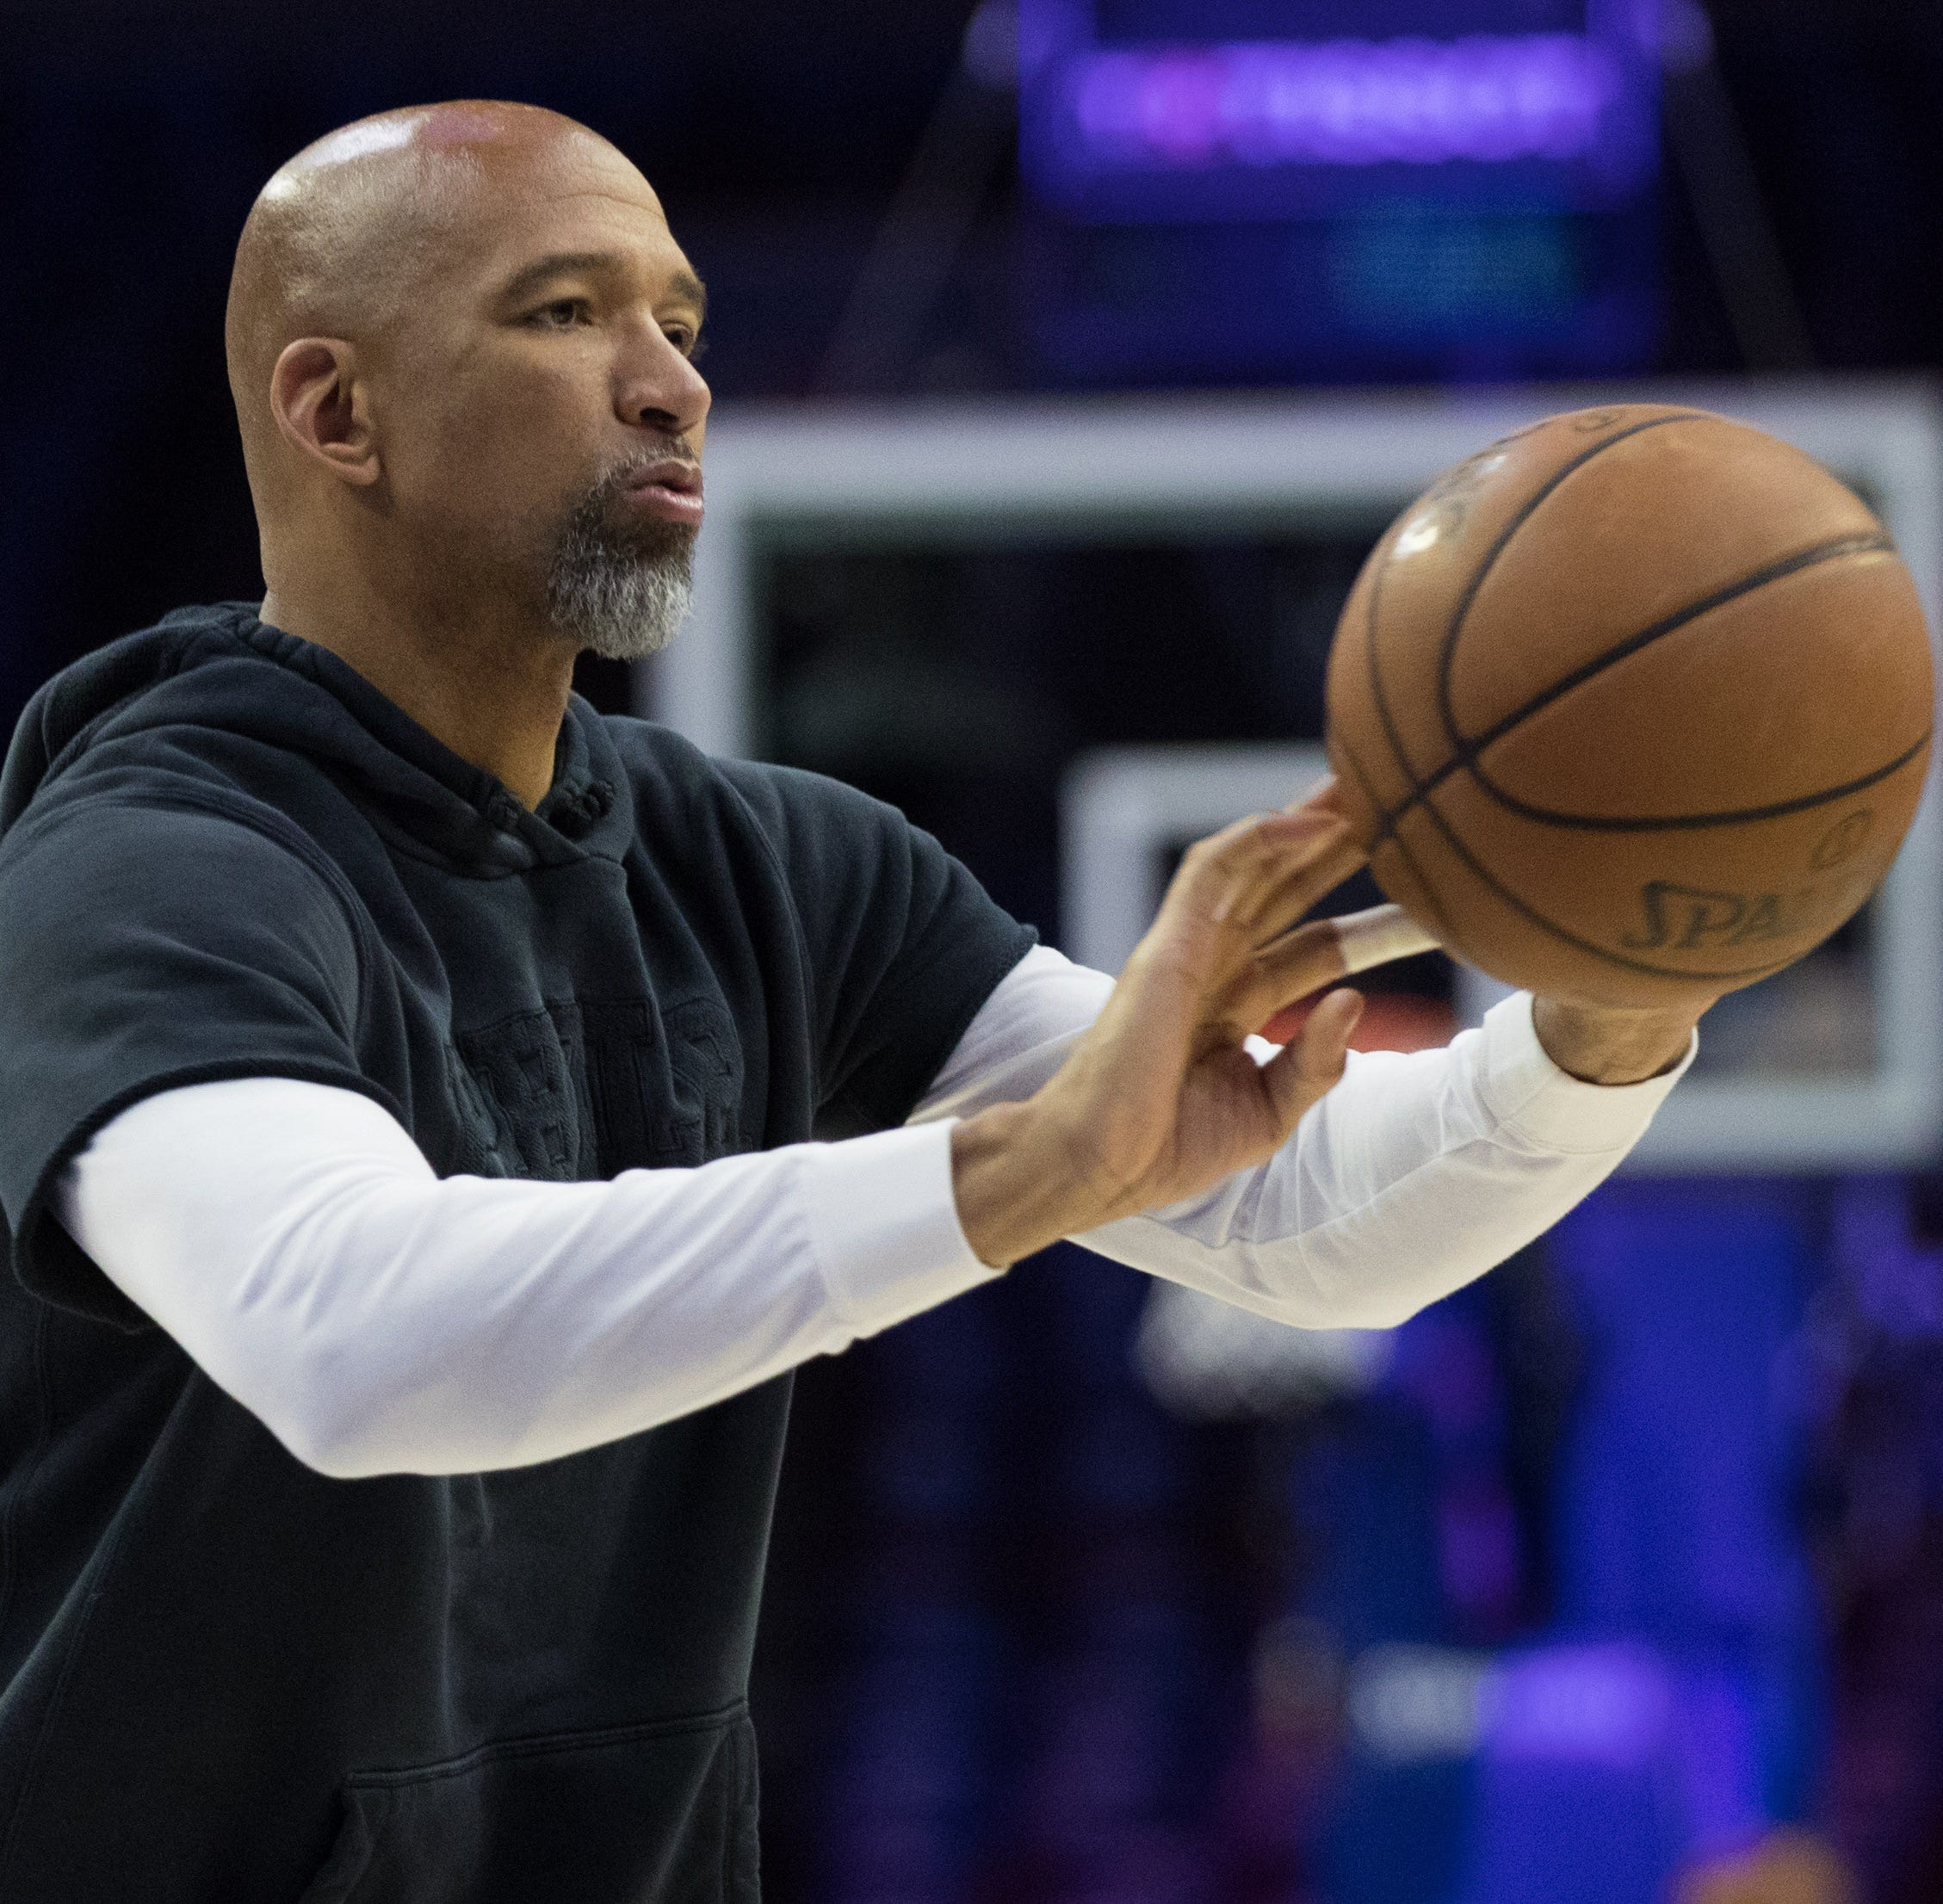 Suns met with top coaching target Monty Williams, but didn't make an offer